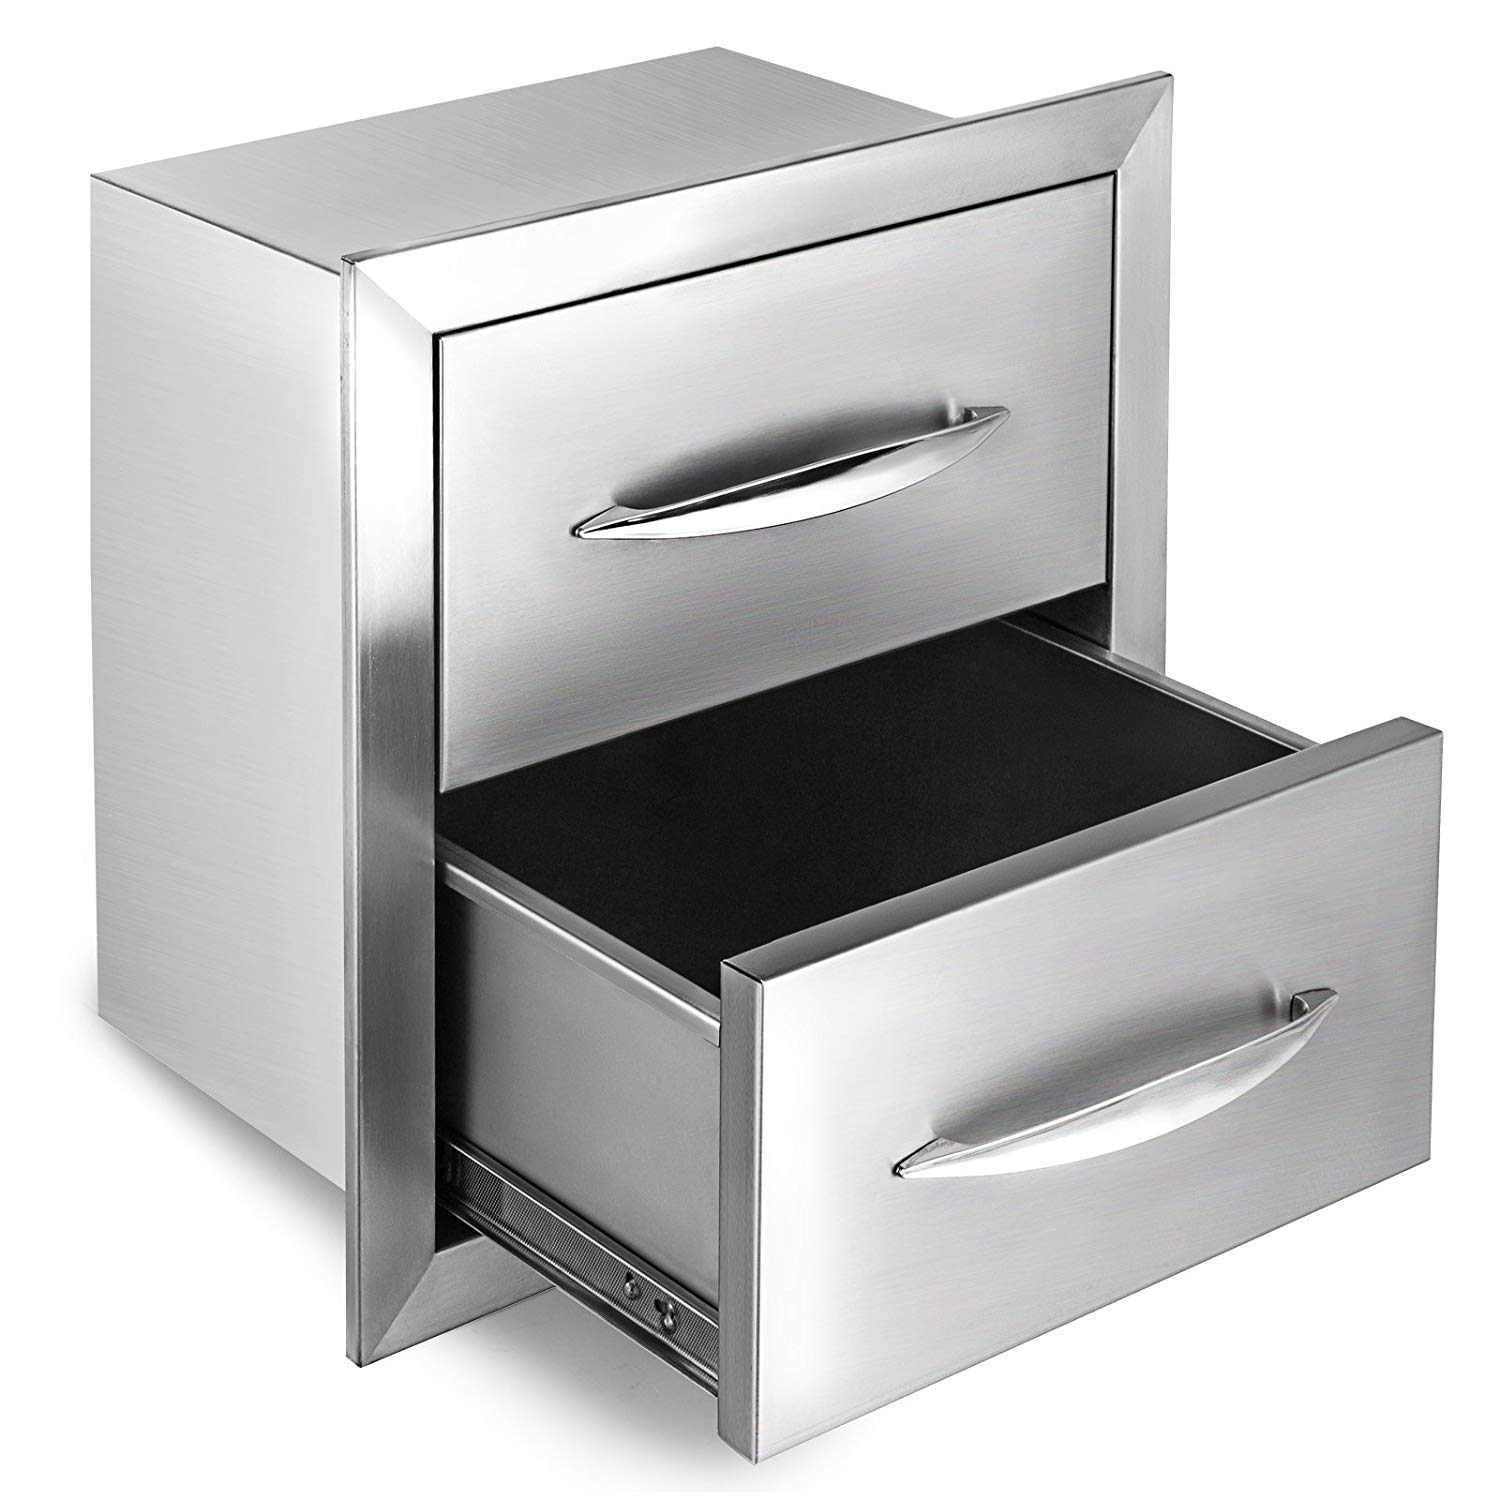 """Happybuy Outdoor kitchen drawer 18""""x15"""" Stainless steel BBQ Island Drawer storage with Chrome Handle Double Access Drawer Flush Mount Sliver Double Access Drawer (Outdoor kitchen drawer 18""""x15"""")"""